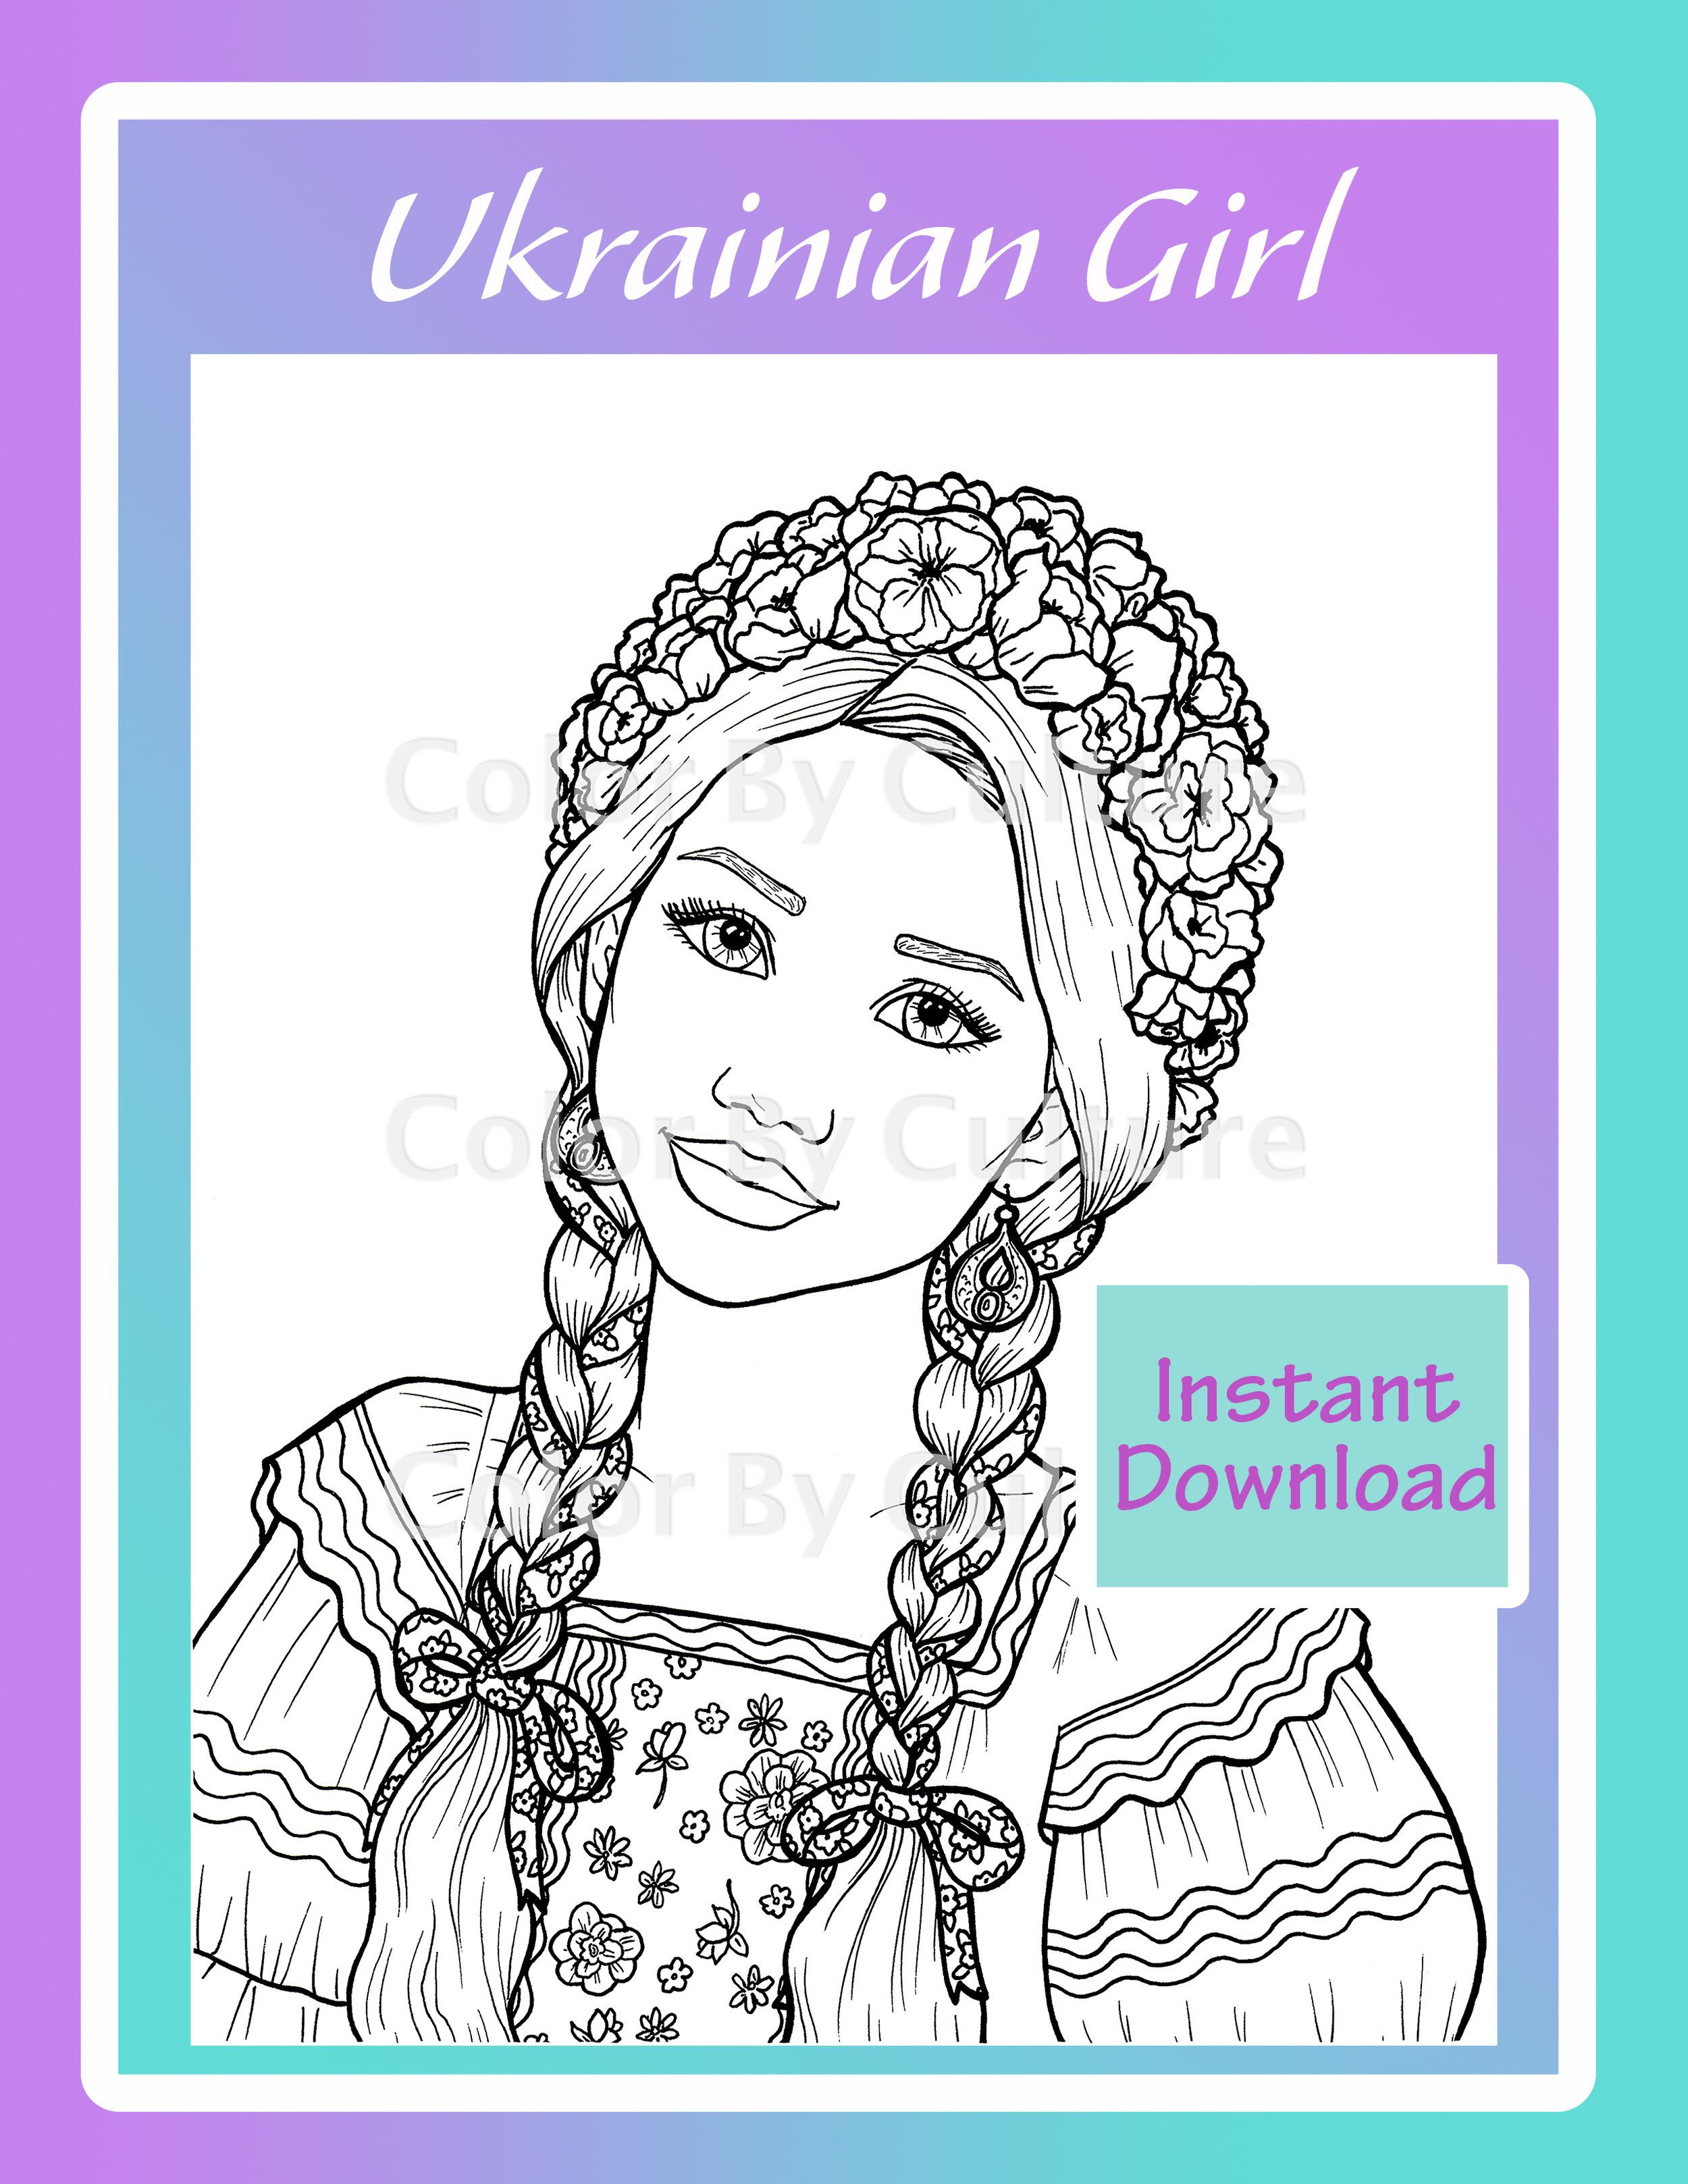 Ukrainian Girl Coloring Page Color By Culture Mermaid Coloring Pages Coloring Pages For Girls Coloring Pages